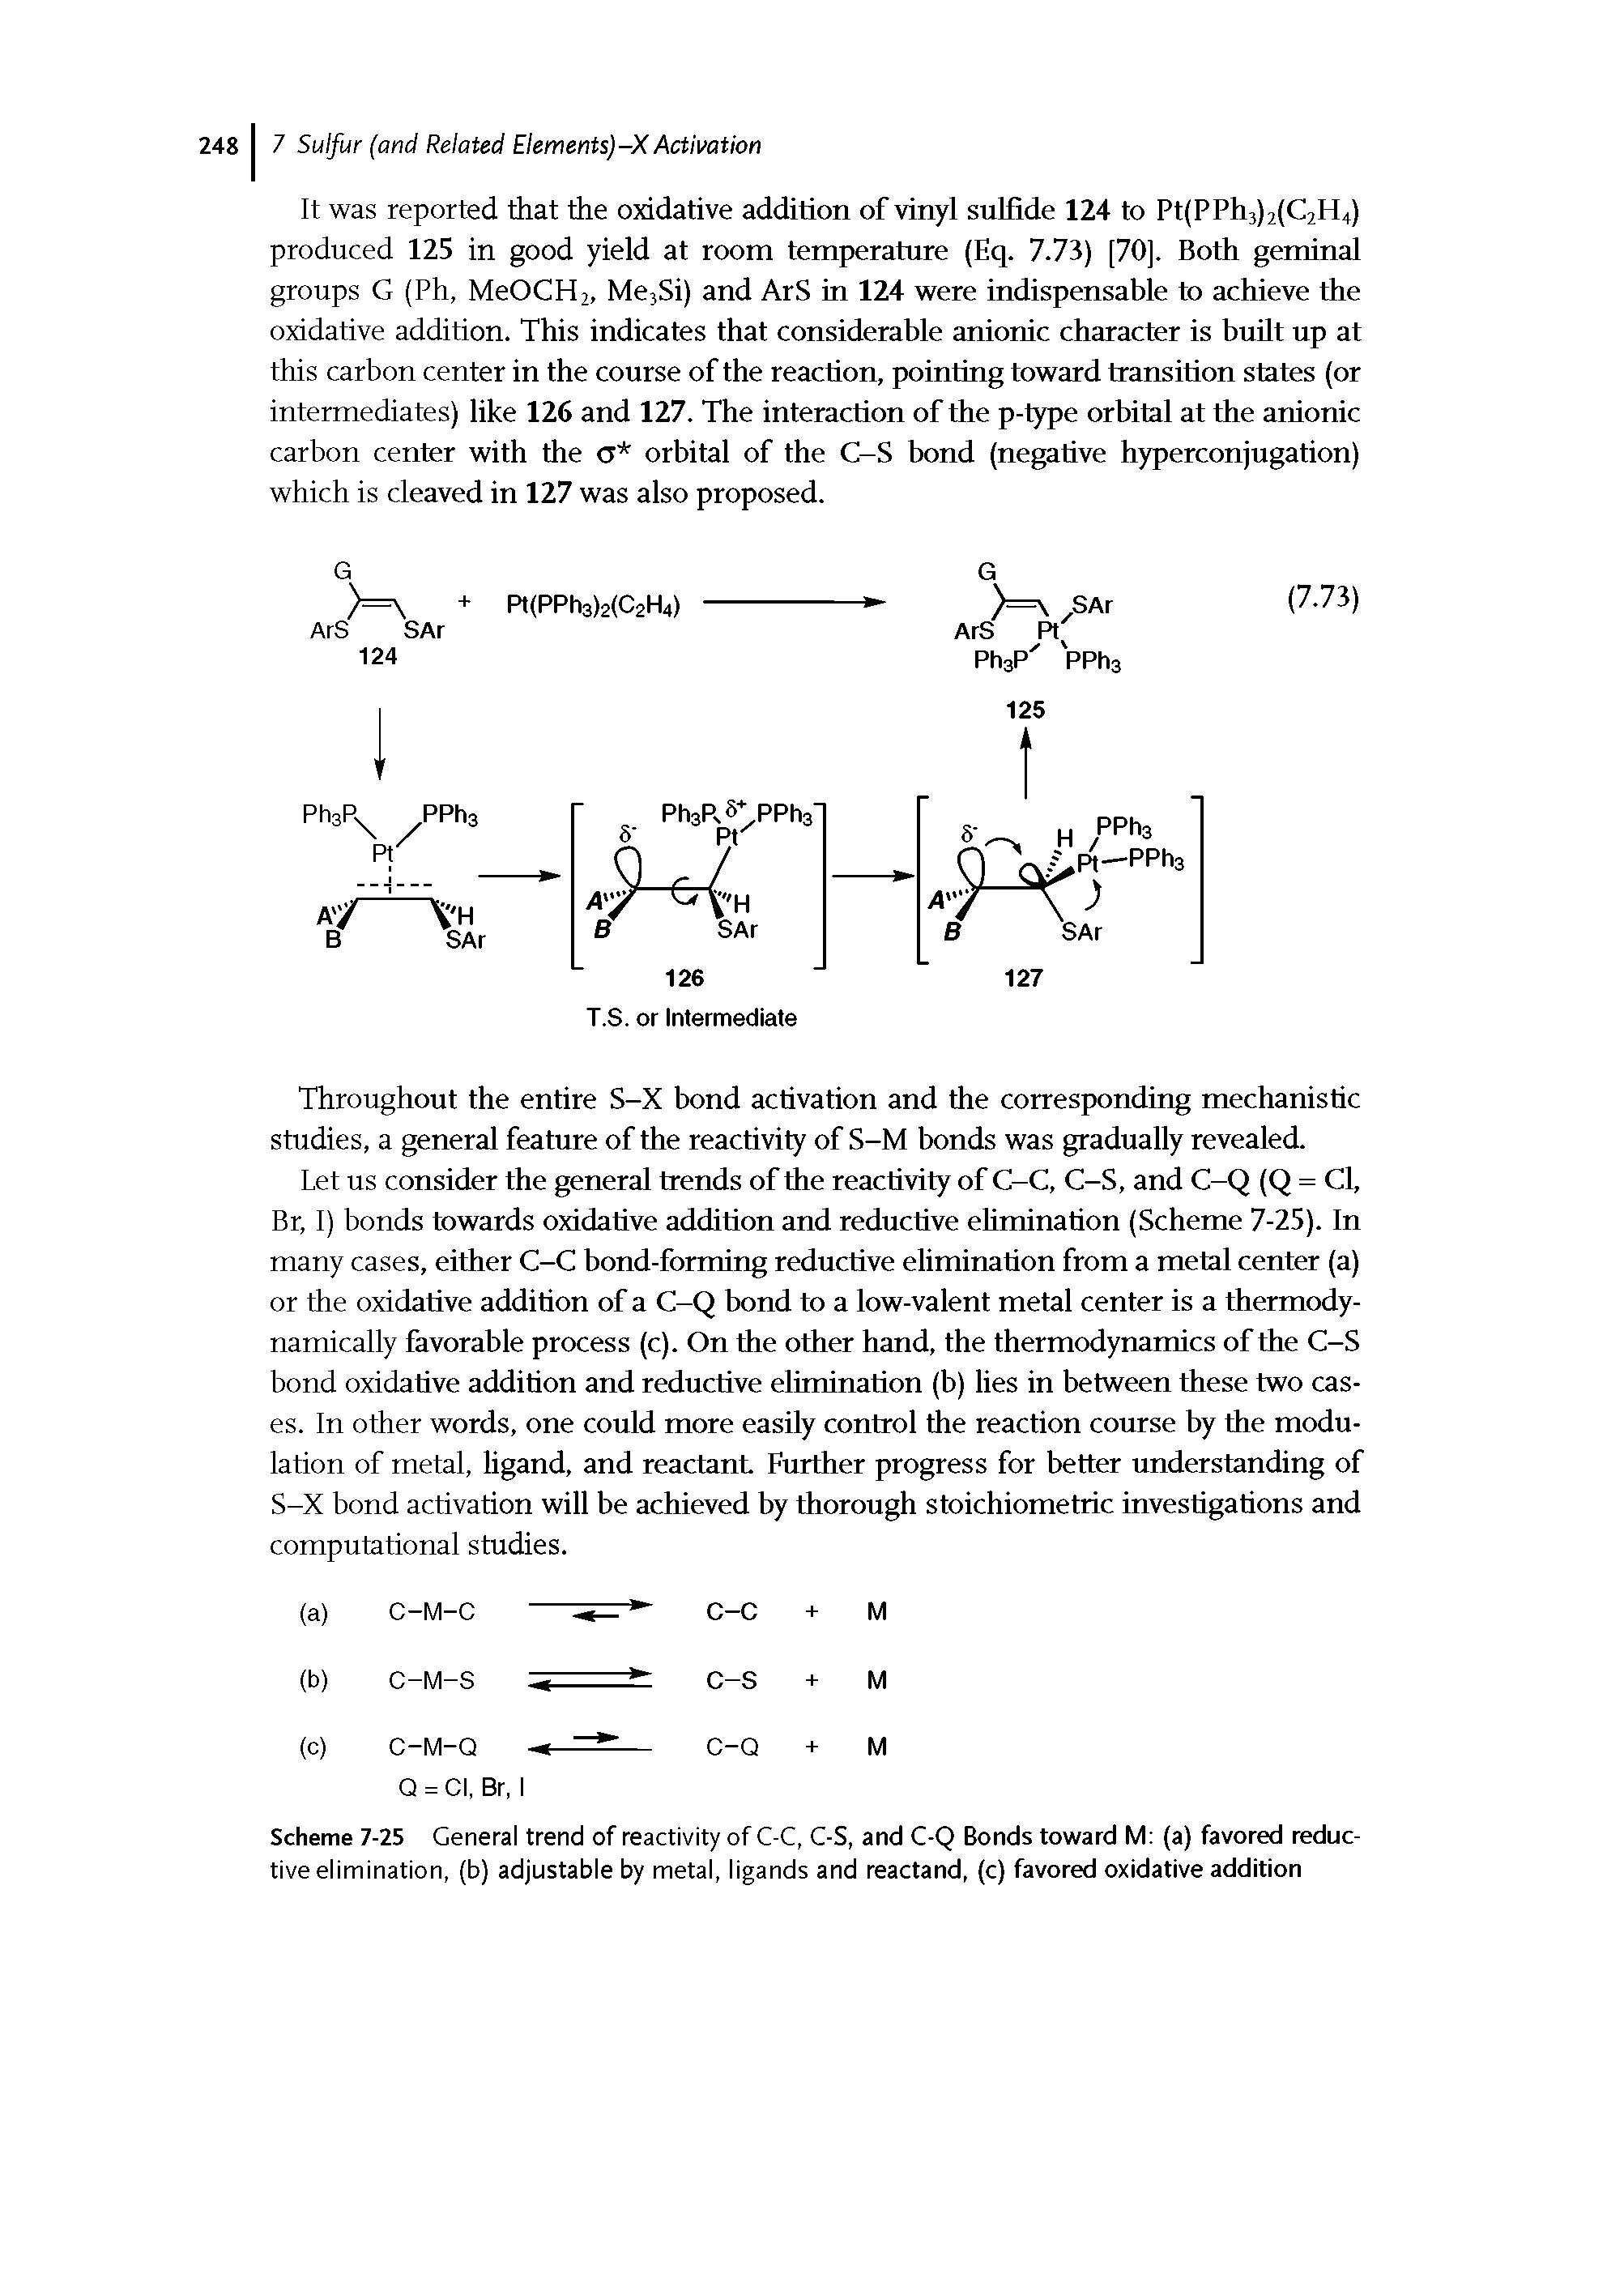 Scheme 7-25 General trend of reactivity of C-C, C-S, and C-Q Bonds toward M (a) favored reductive elimination, (b) adjustable by metal, ligands and reactand, (c) favored oxidative addition...